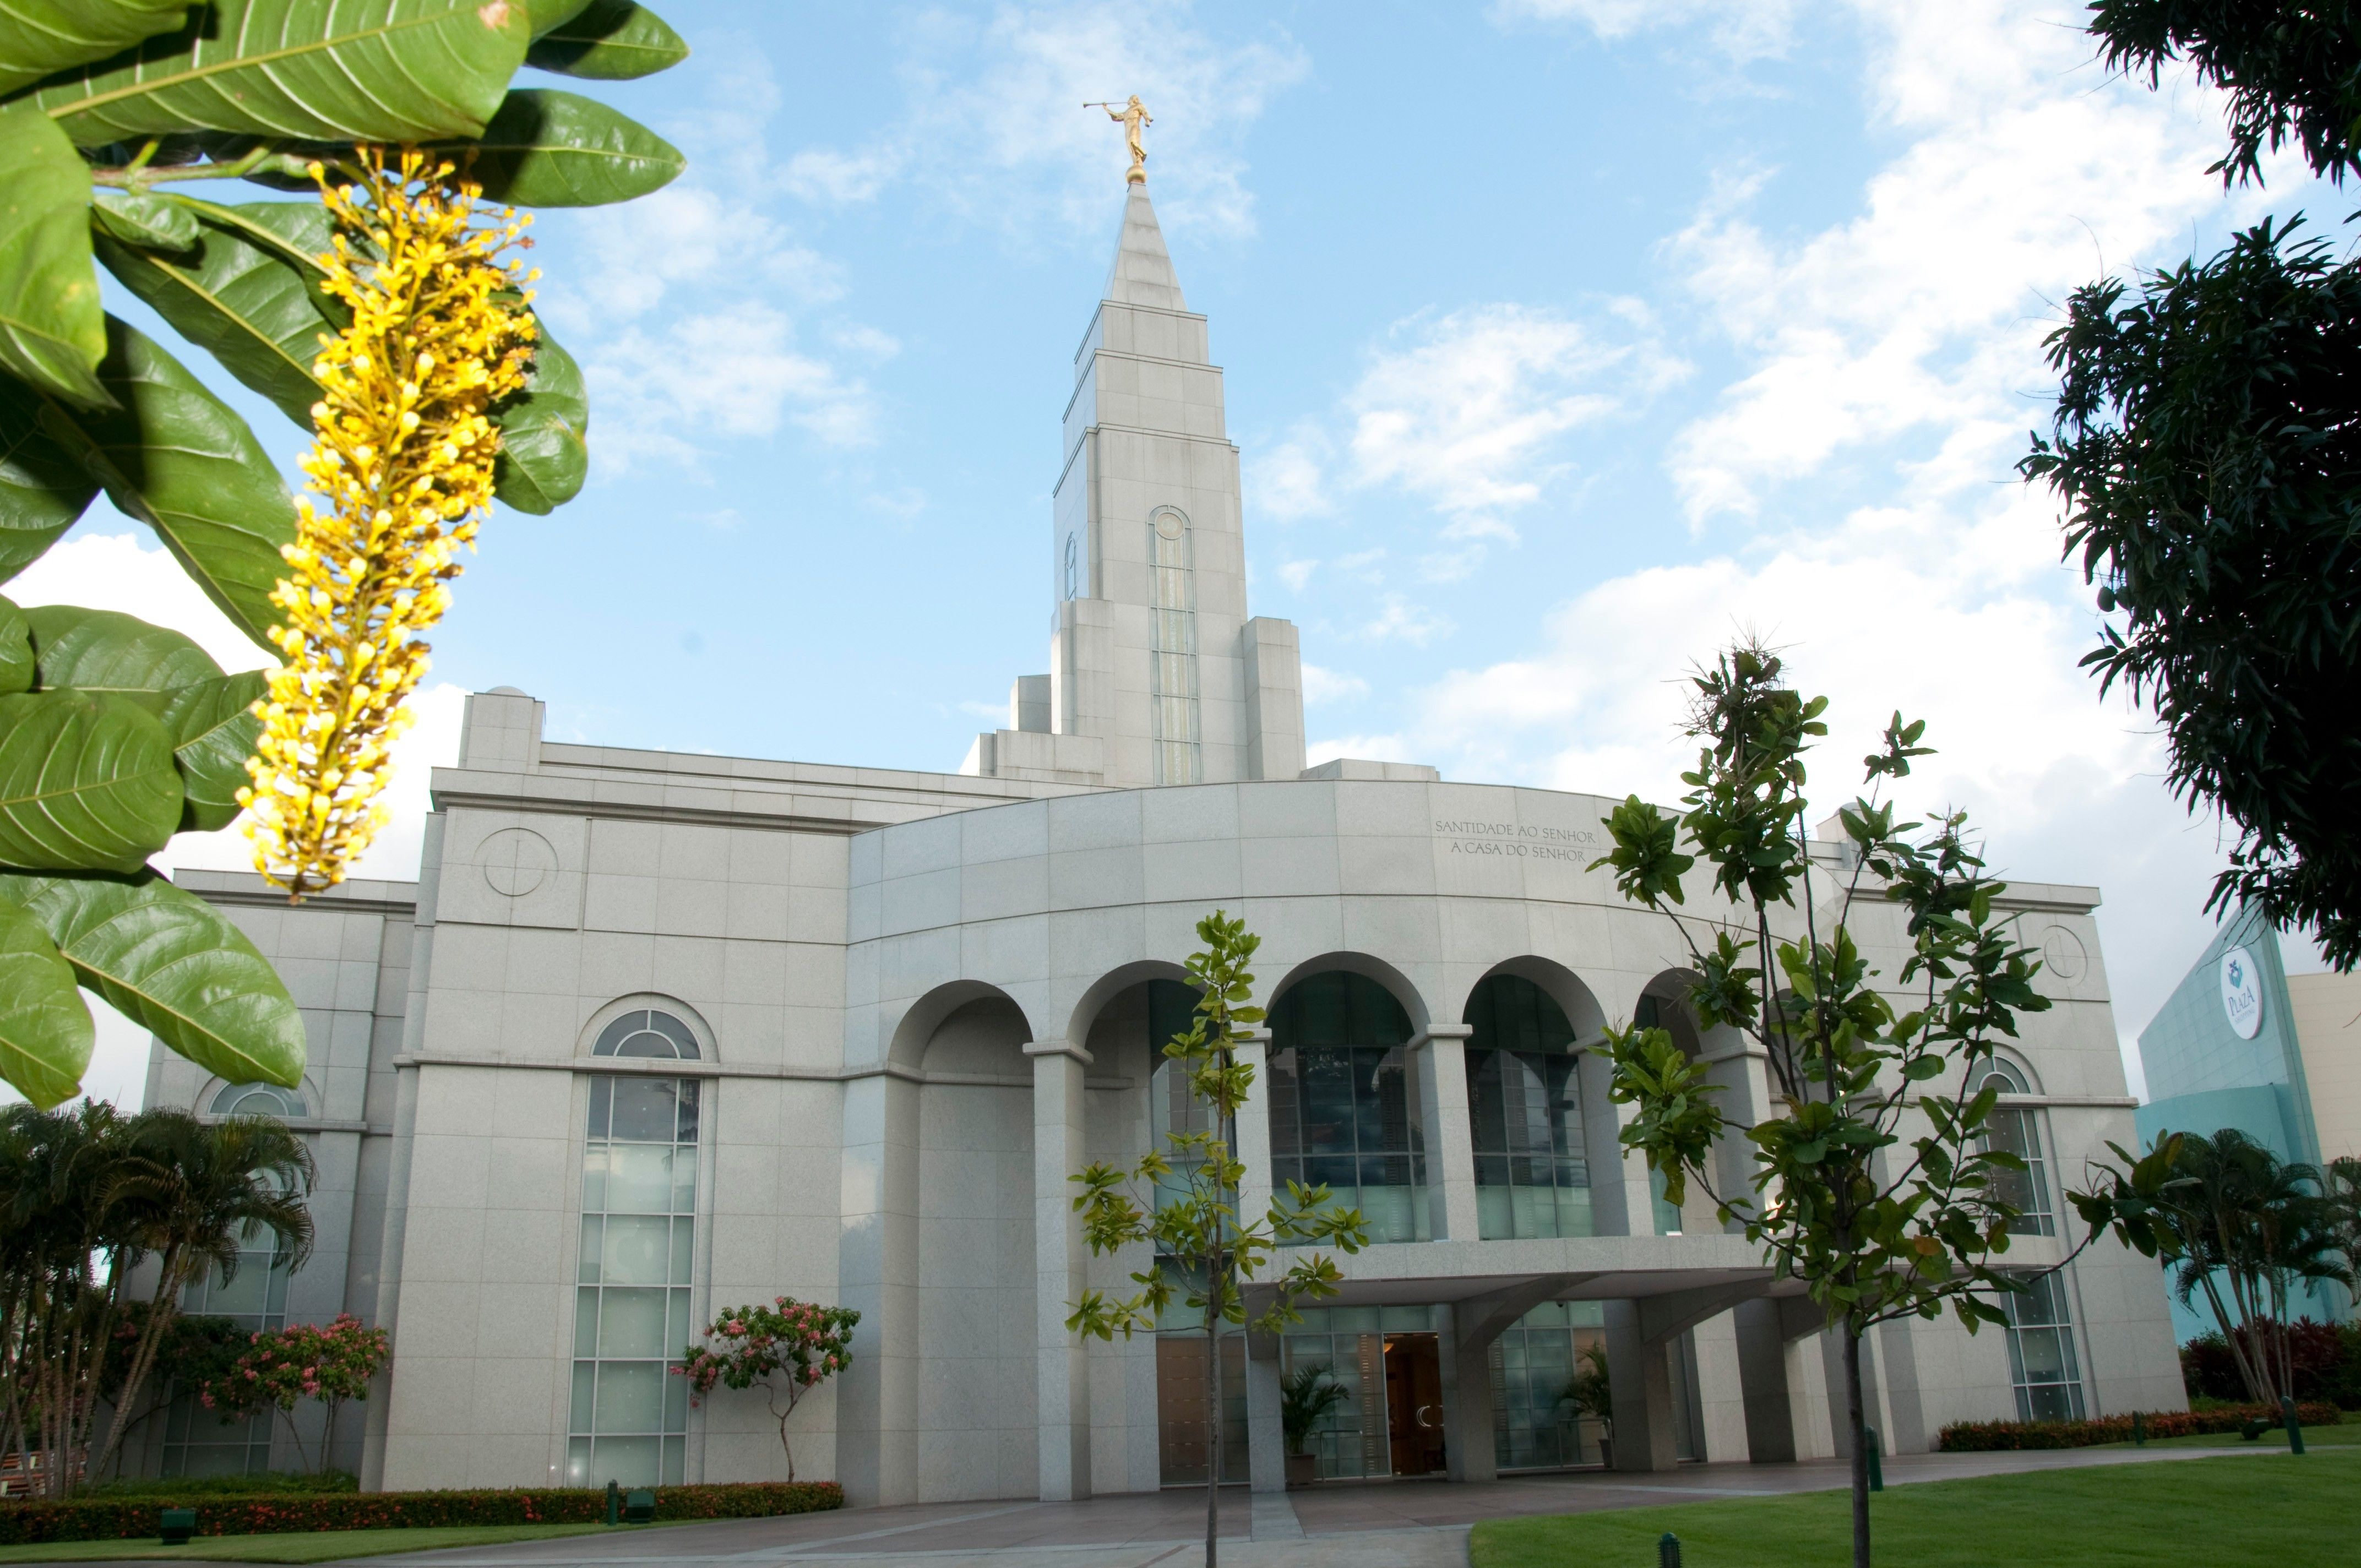 The Recife Brazil Temple on a sunny day.